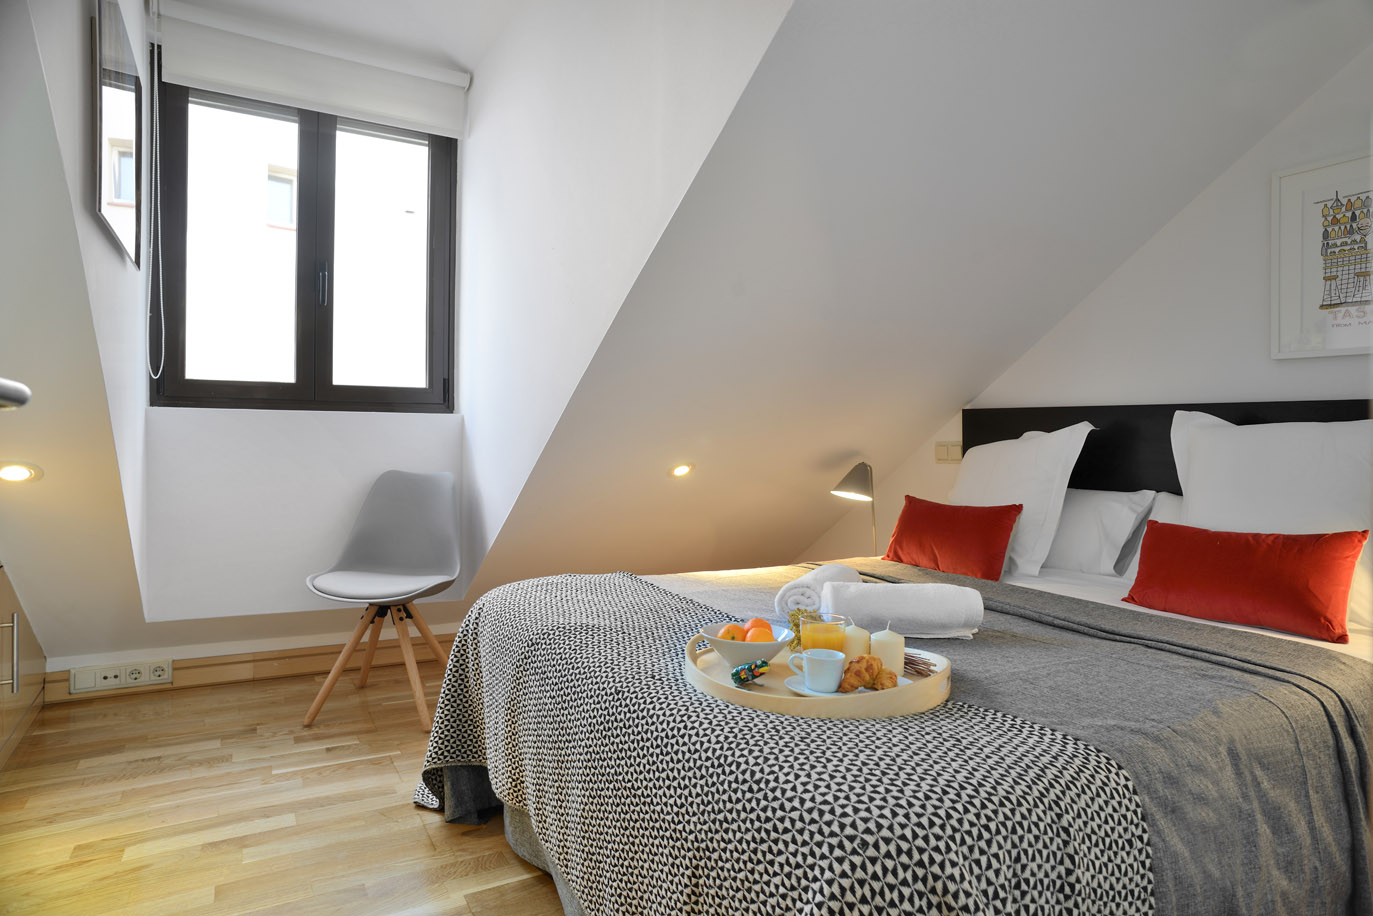 Bedroomm Design - Malasaña Boutique Apartments